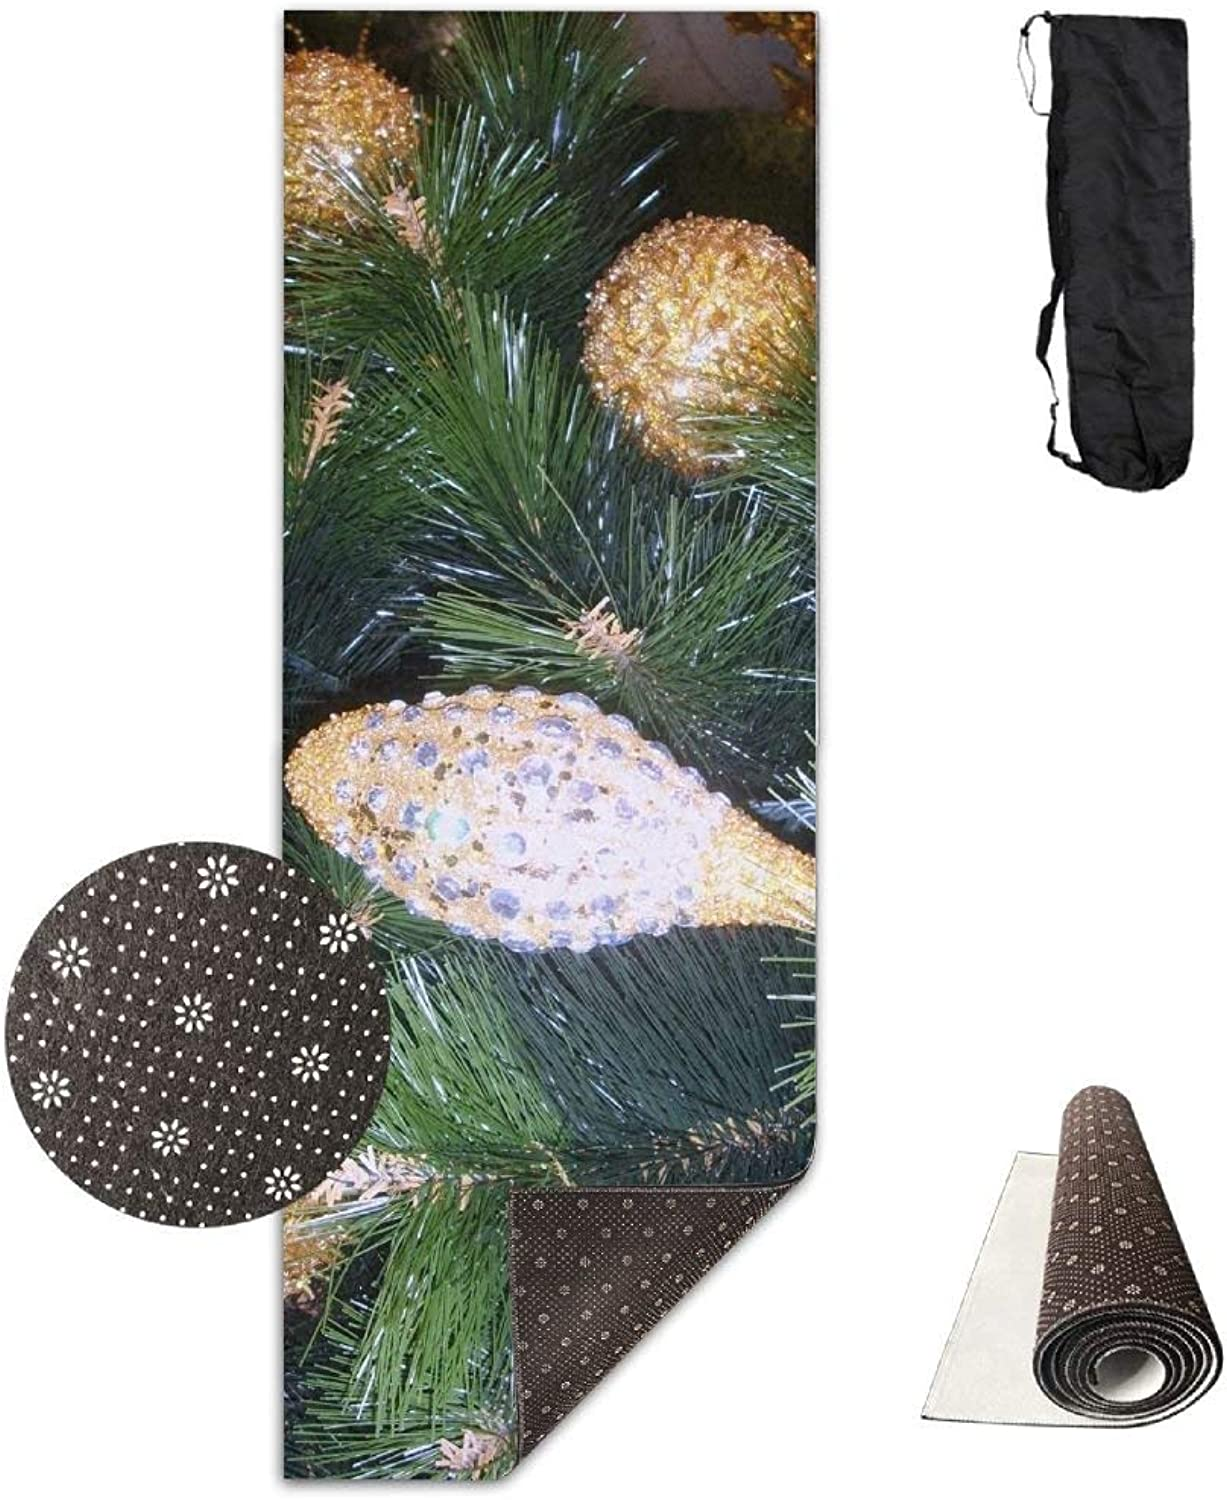 Christmas Decorations Ornaments gold Needles Closeup ECO Aqua Power Kinematic Iyengar Kundini Hot Pilates Gymnastics Hatha Yoga Mat and Other Mats That Need to Be Performed On The Ground